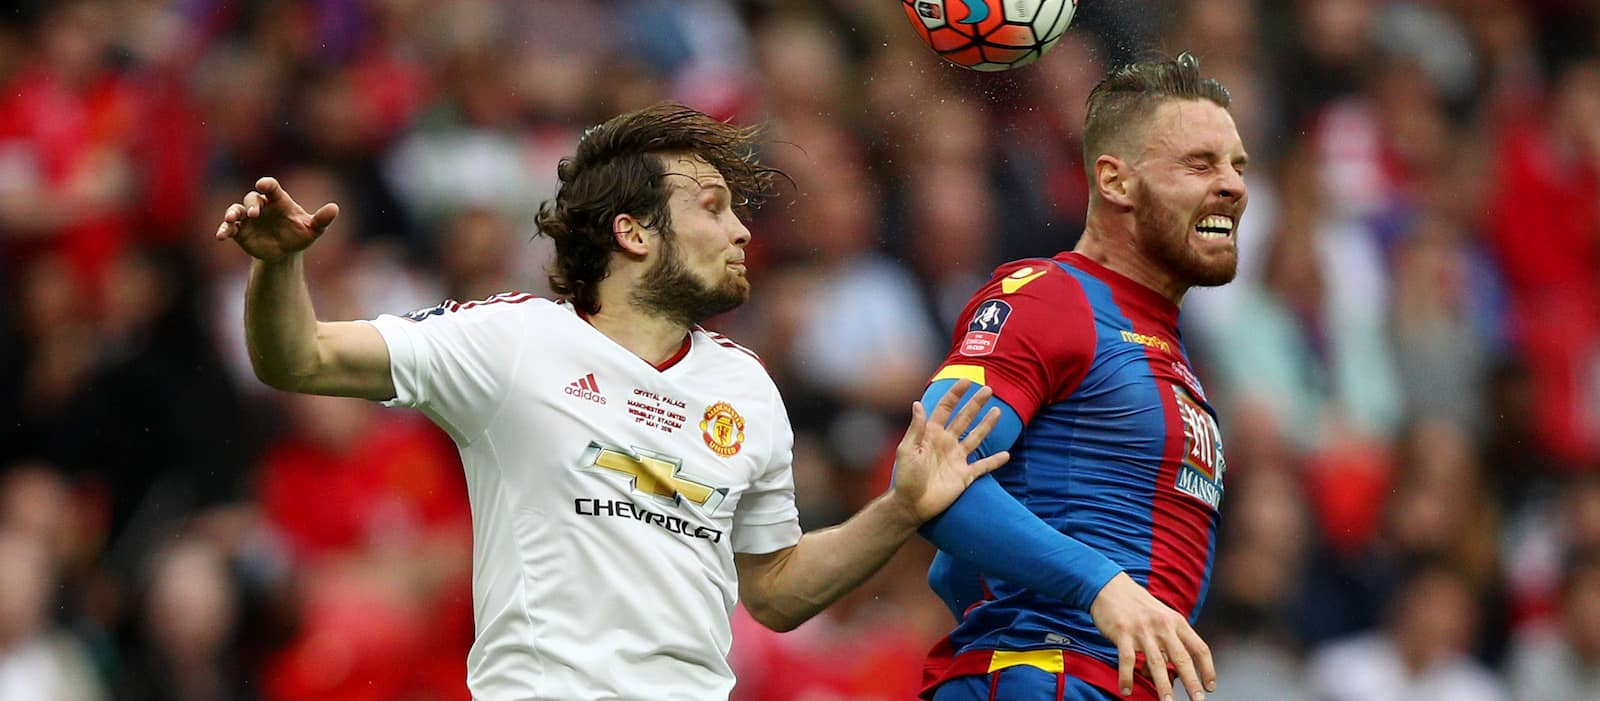 Daley Blind: I'm ready for next season at Manchester United